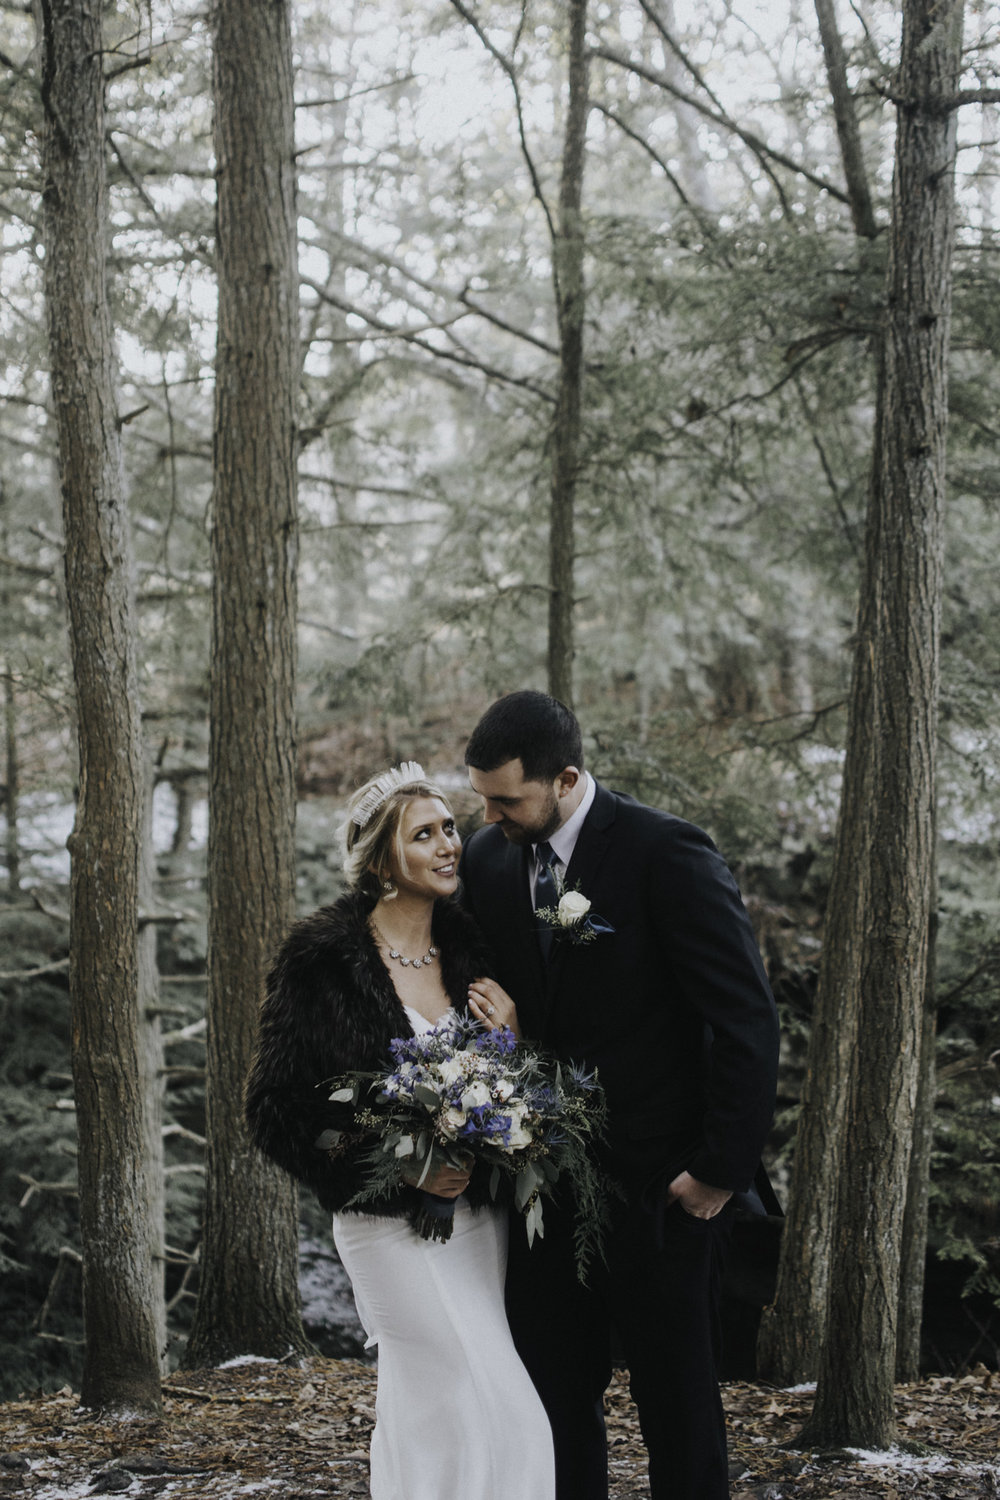 Cate_Ann_Photography_Dayton_Ohio_Wedding_Elopement_And_Engagement_PhotographerDSC_6090.jpg